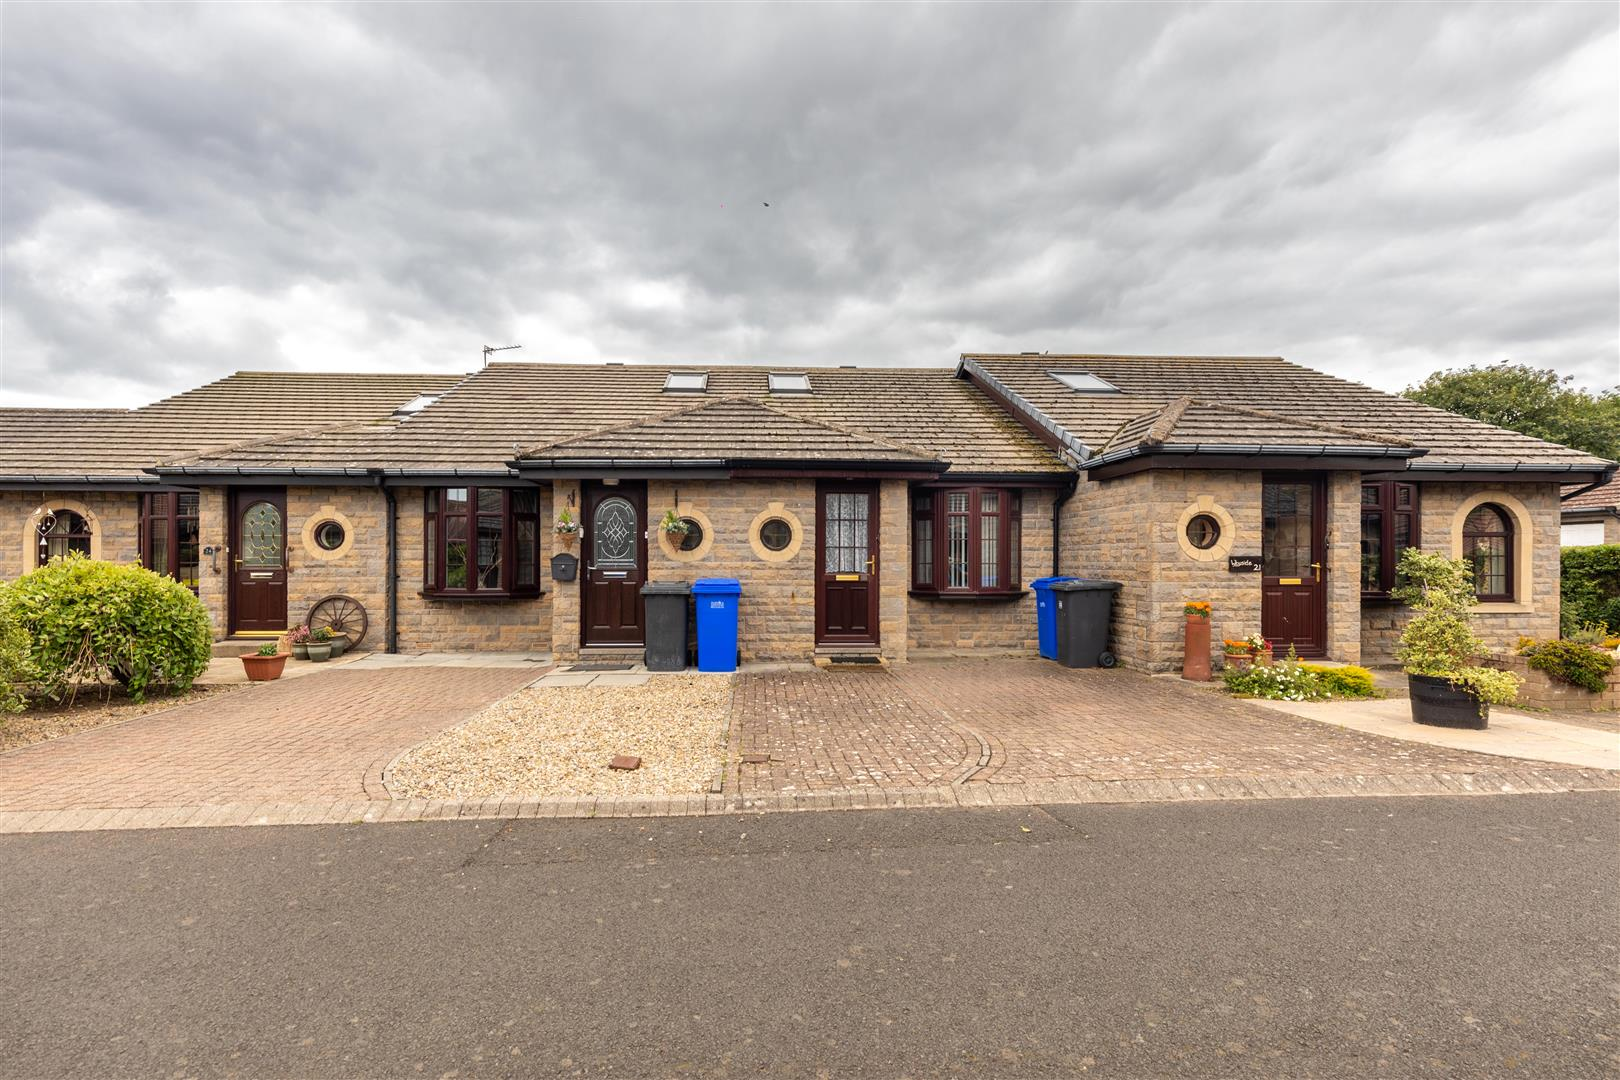 2 bed terraced bungalow for sale in Seahouses, NE68 7YU  - Property Image 1